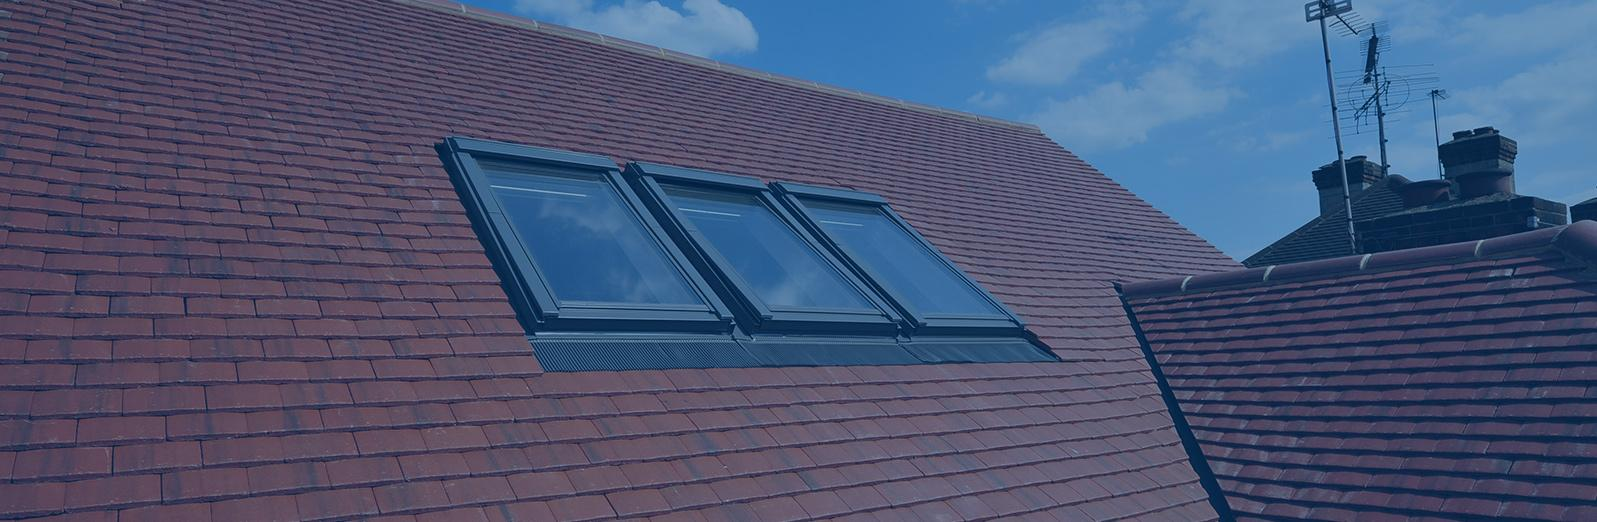 roof-glazing-banner